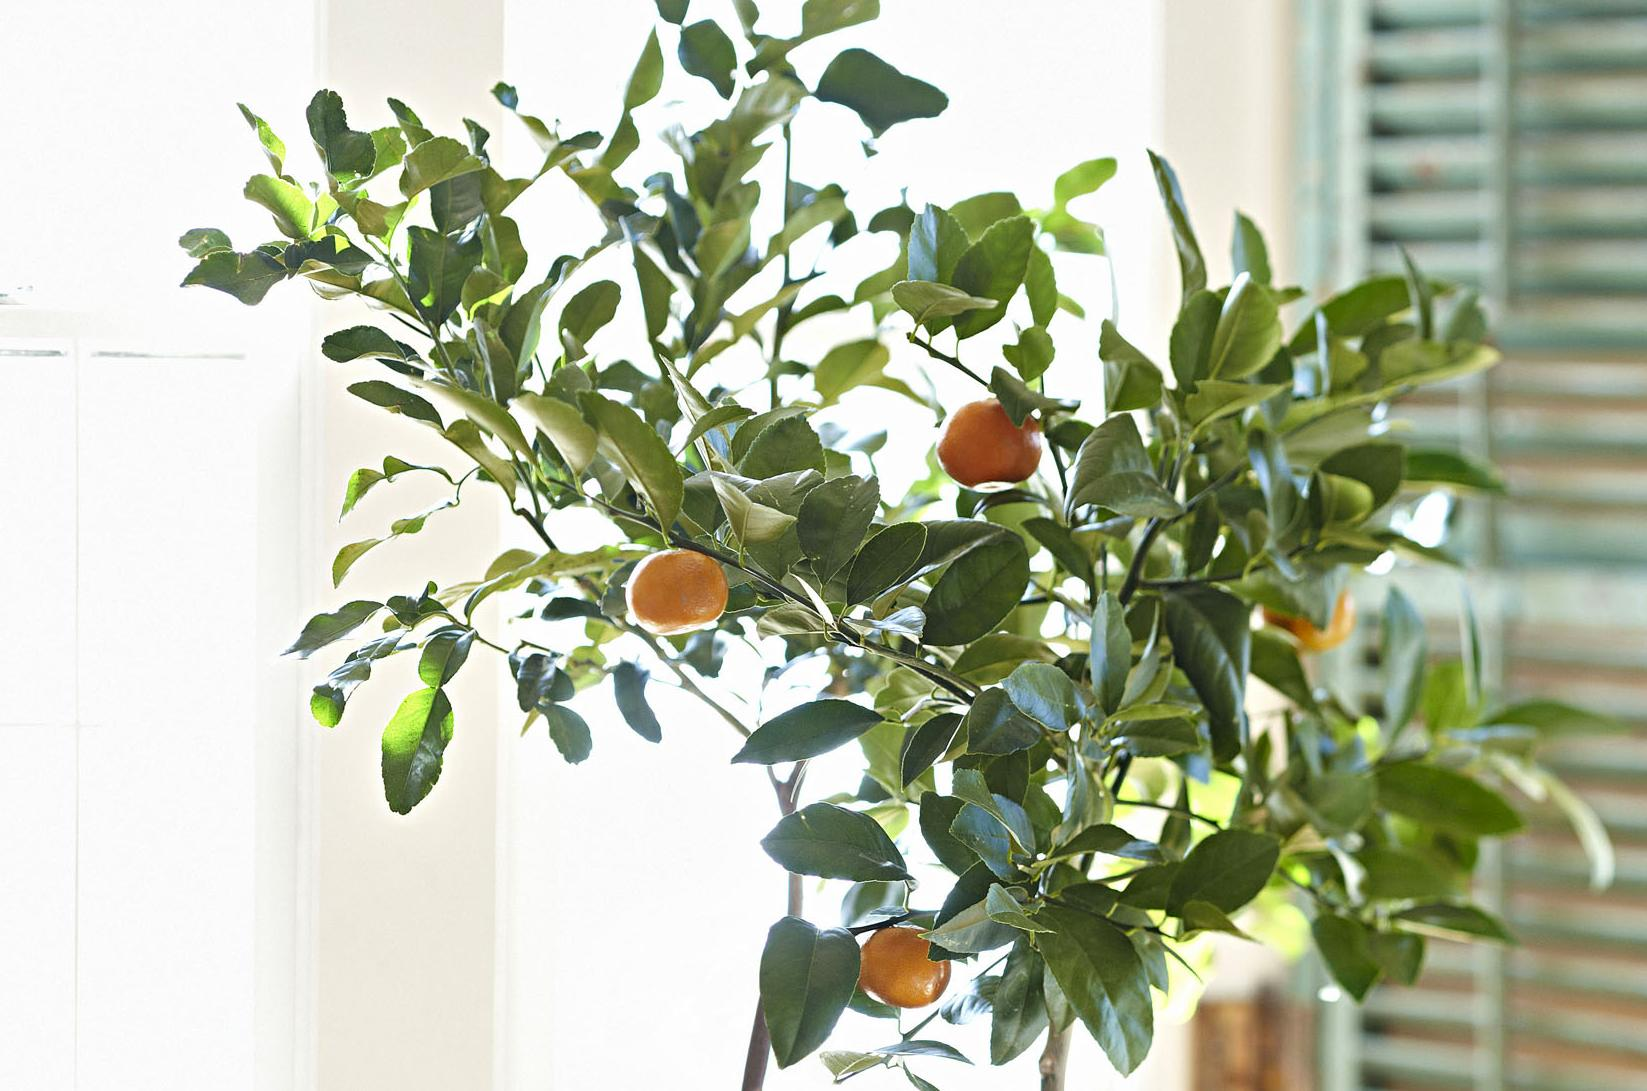 Growing Citrus Indoors Takes Patience Pays Off Handsomely